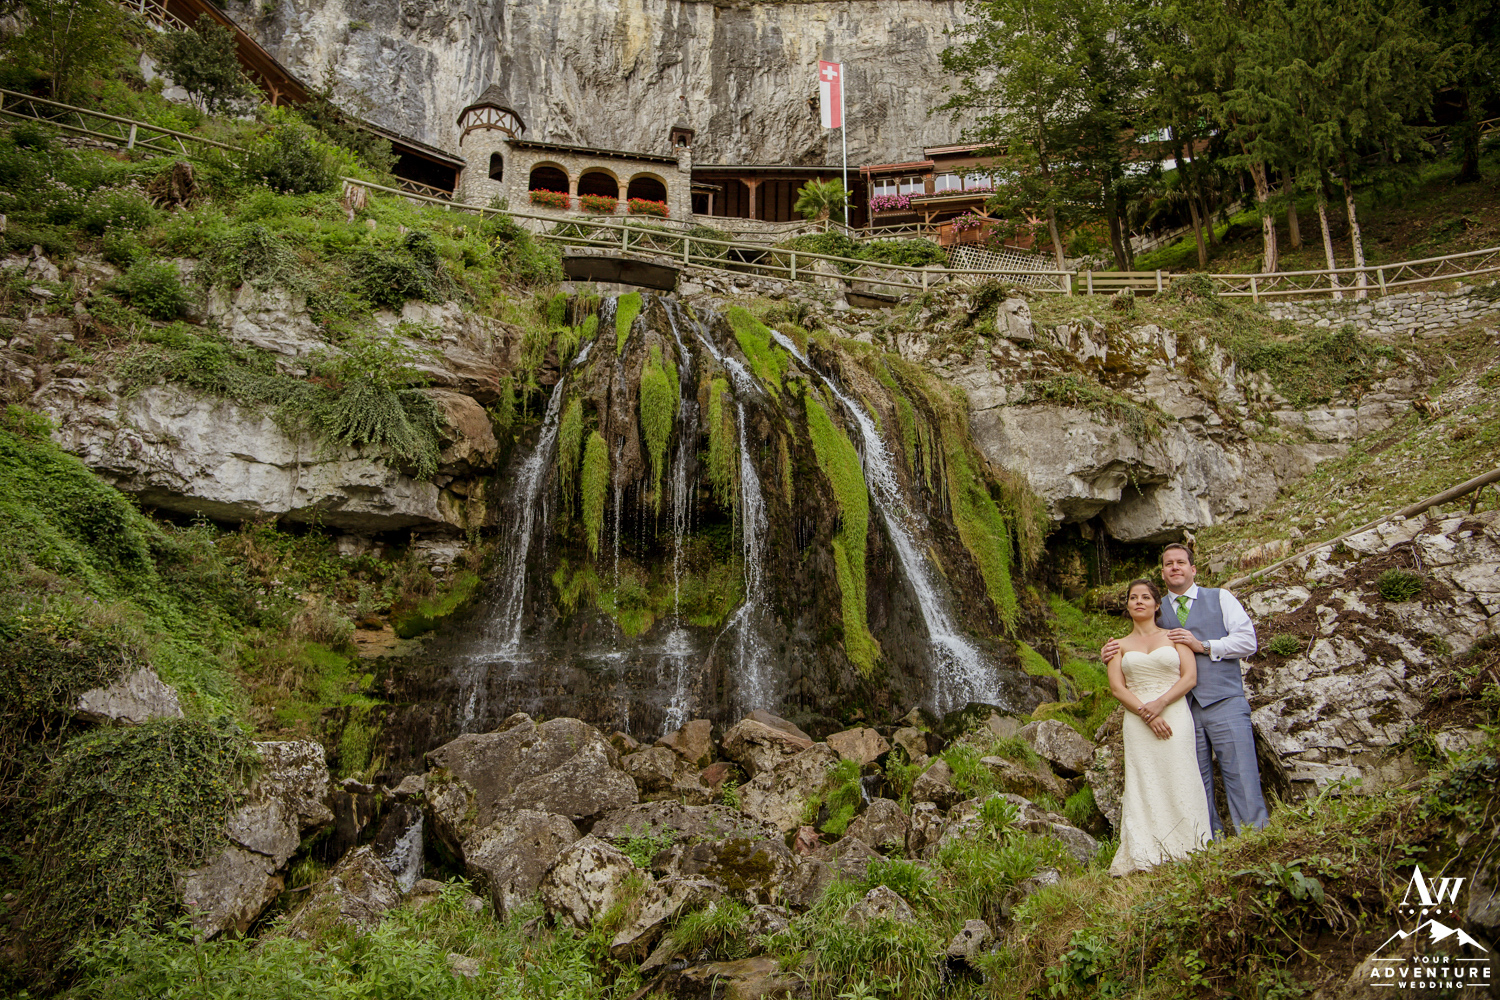 st beatus cave Wedding in switzerland